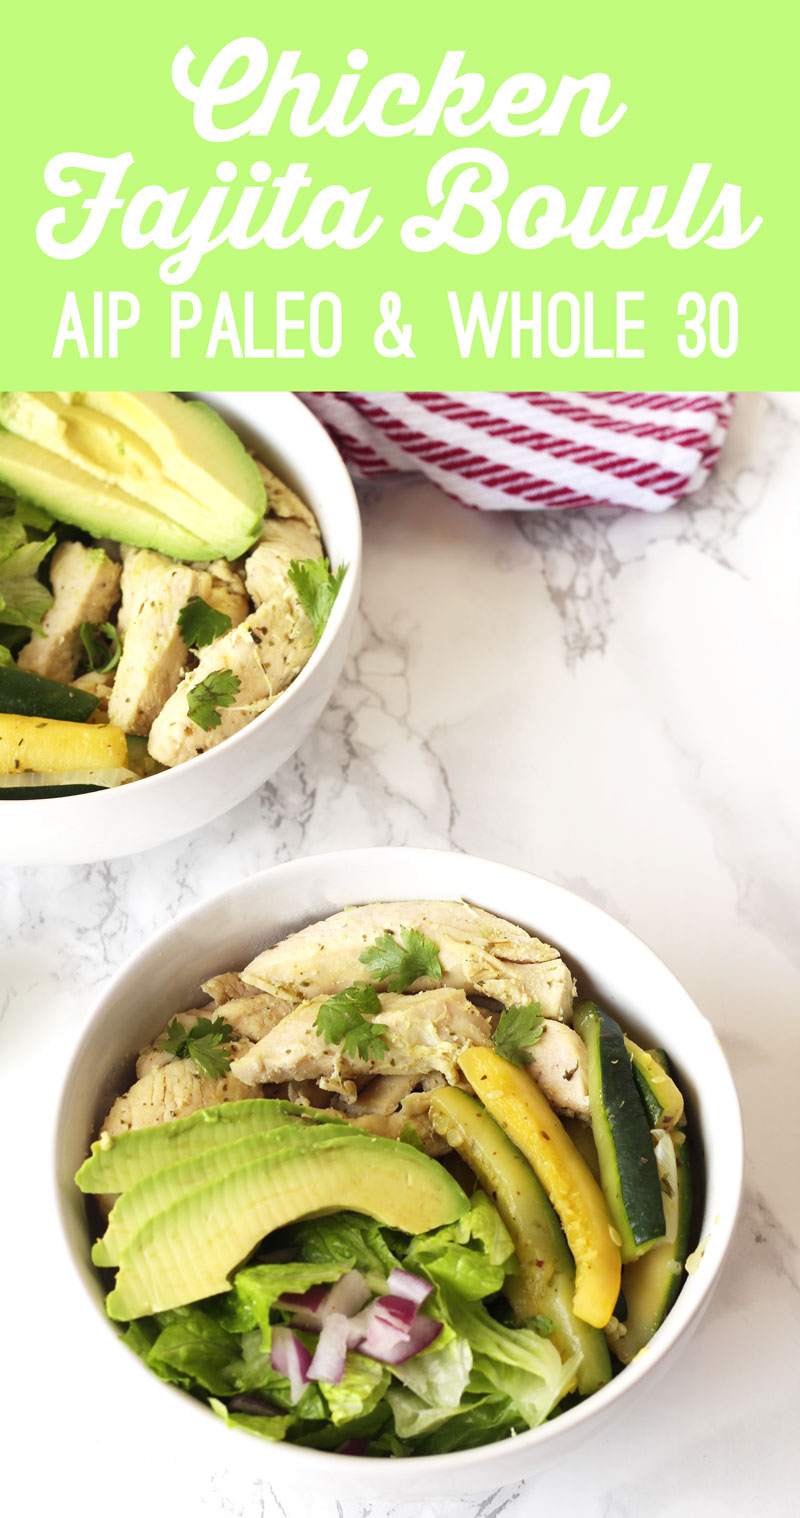 Chicken Fajita Bowls (AIP, Paleo, Whole 30)